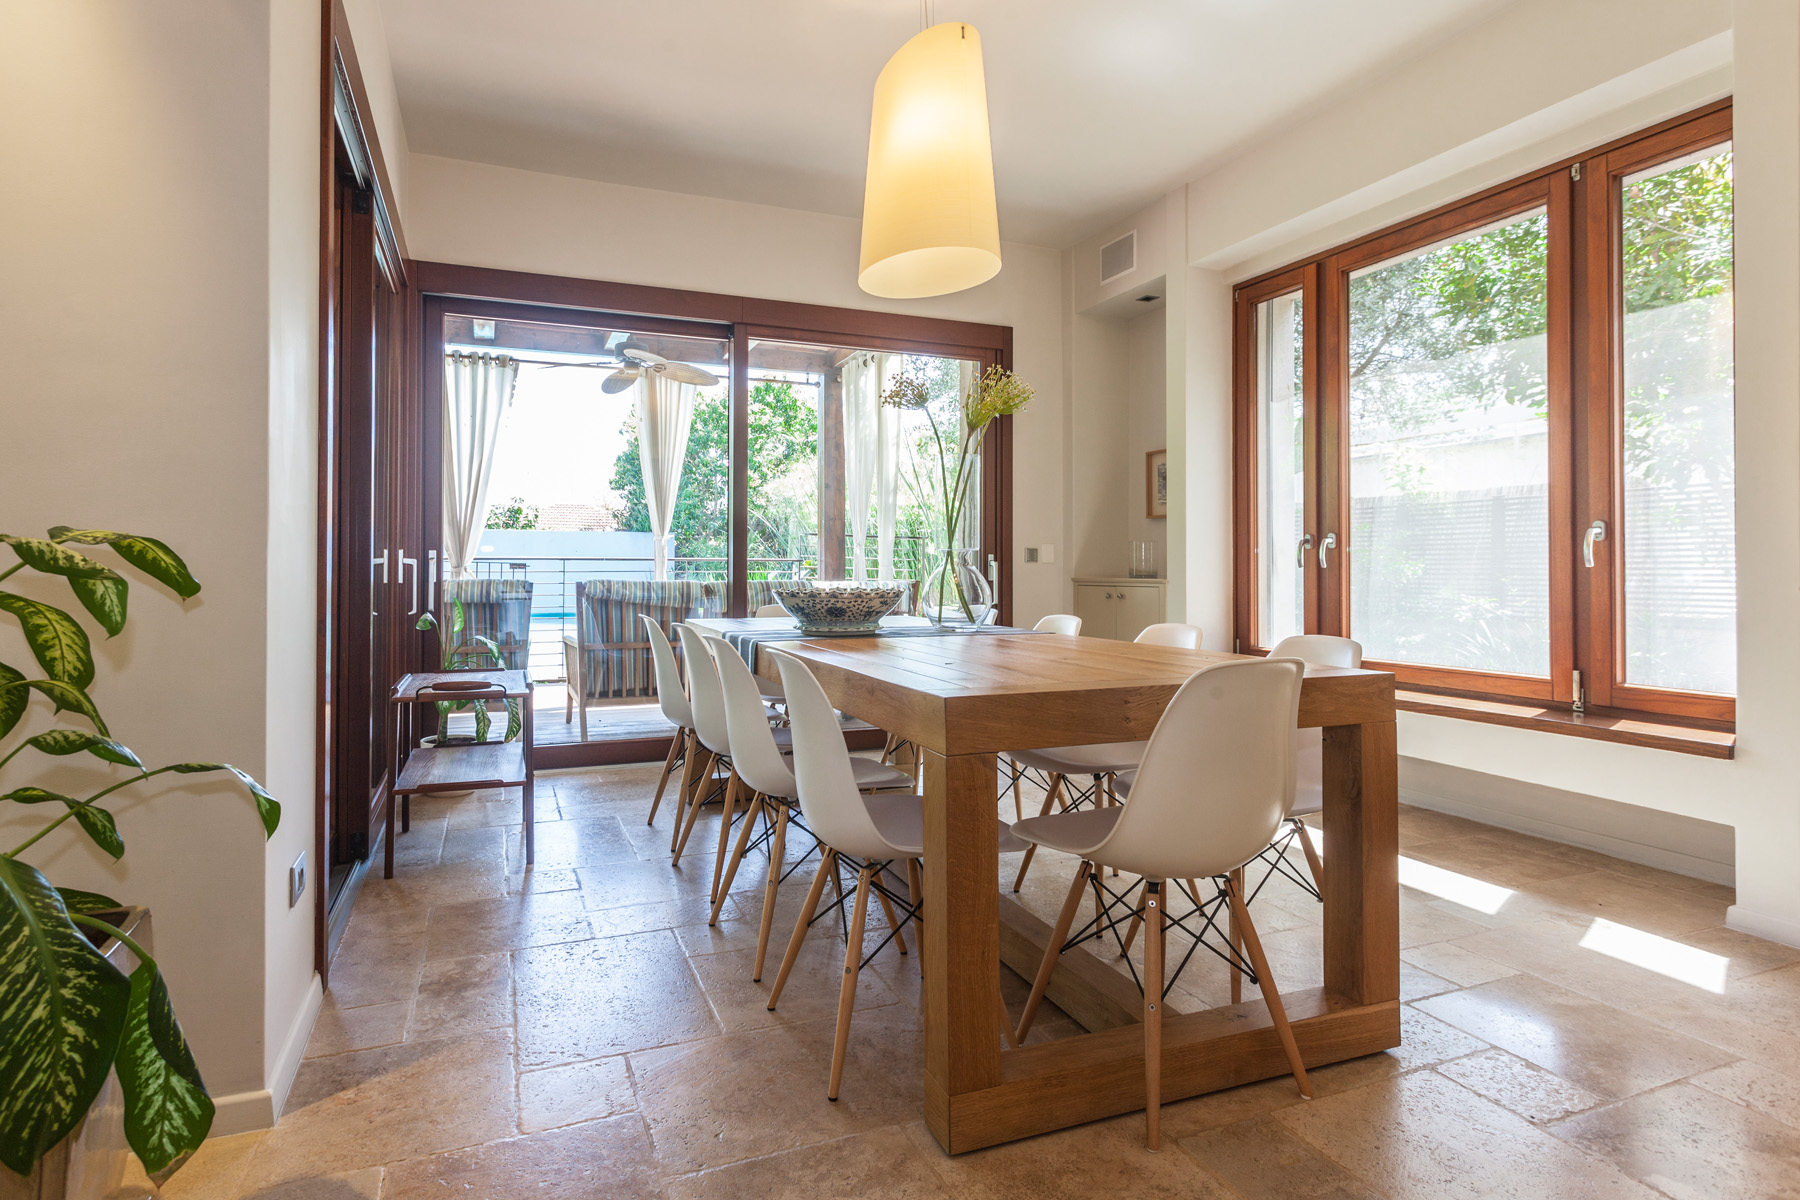 Additional photo for property listing at Bright and Elegant Private house in Nes Ziona Nes Ziona, Israel Israël